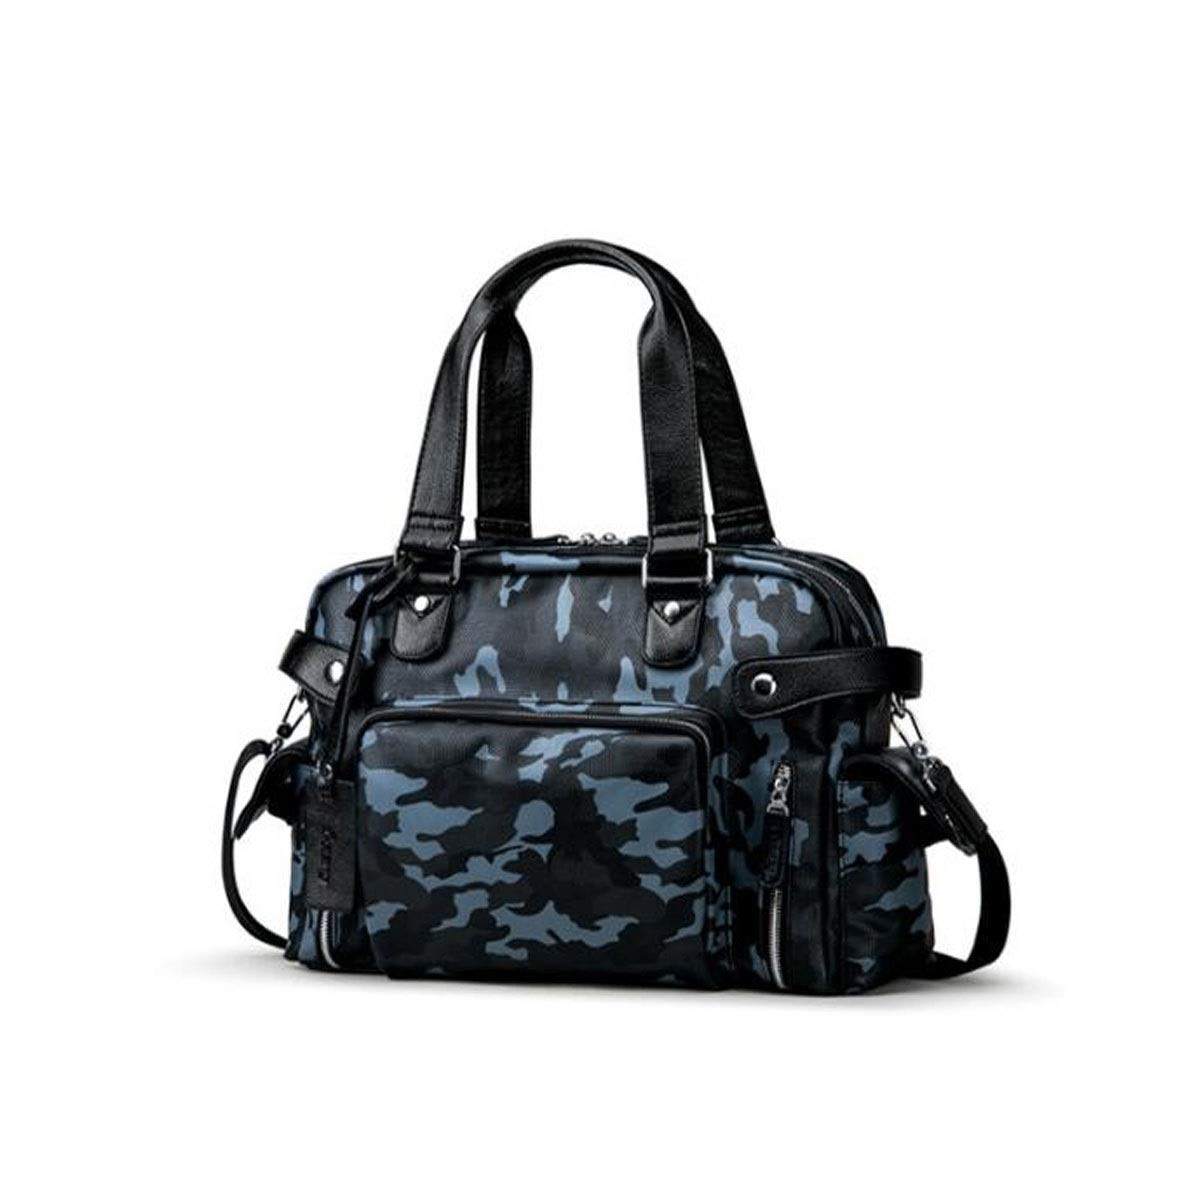 Sports Bag, New Business Travel Men's Handbag, Travel Bag, Sports Bag for Gym, Size: 40 * 13 * 28cm (Color : Camouflage Blue)